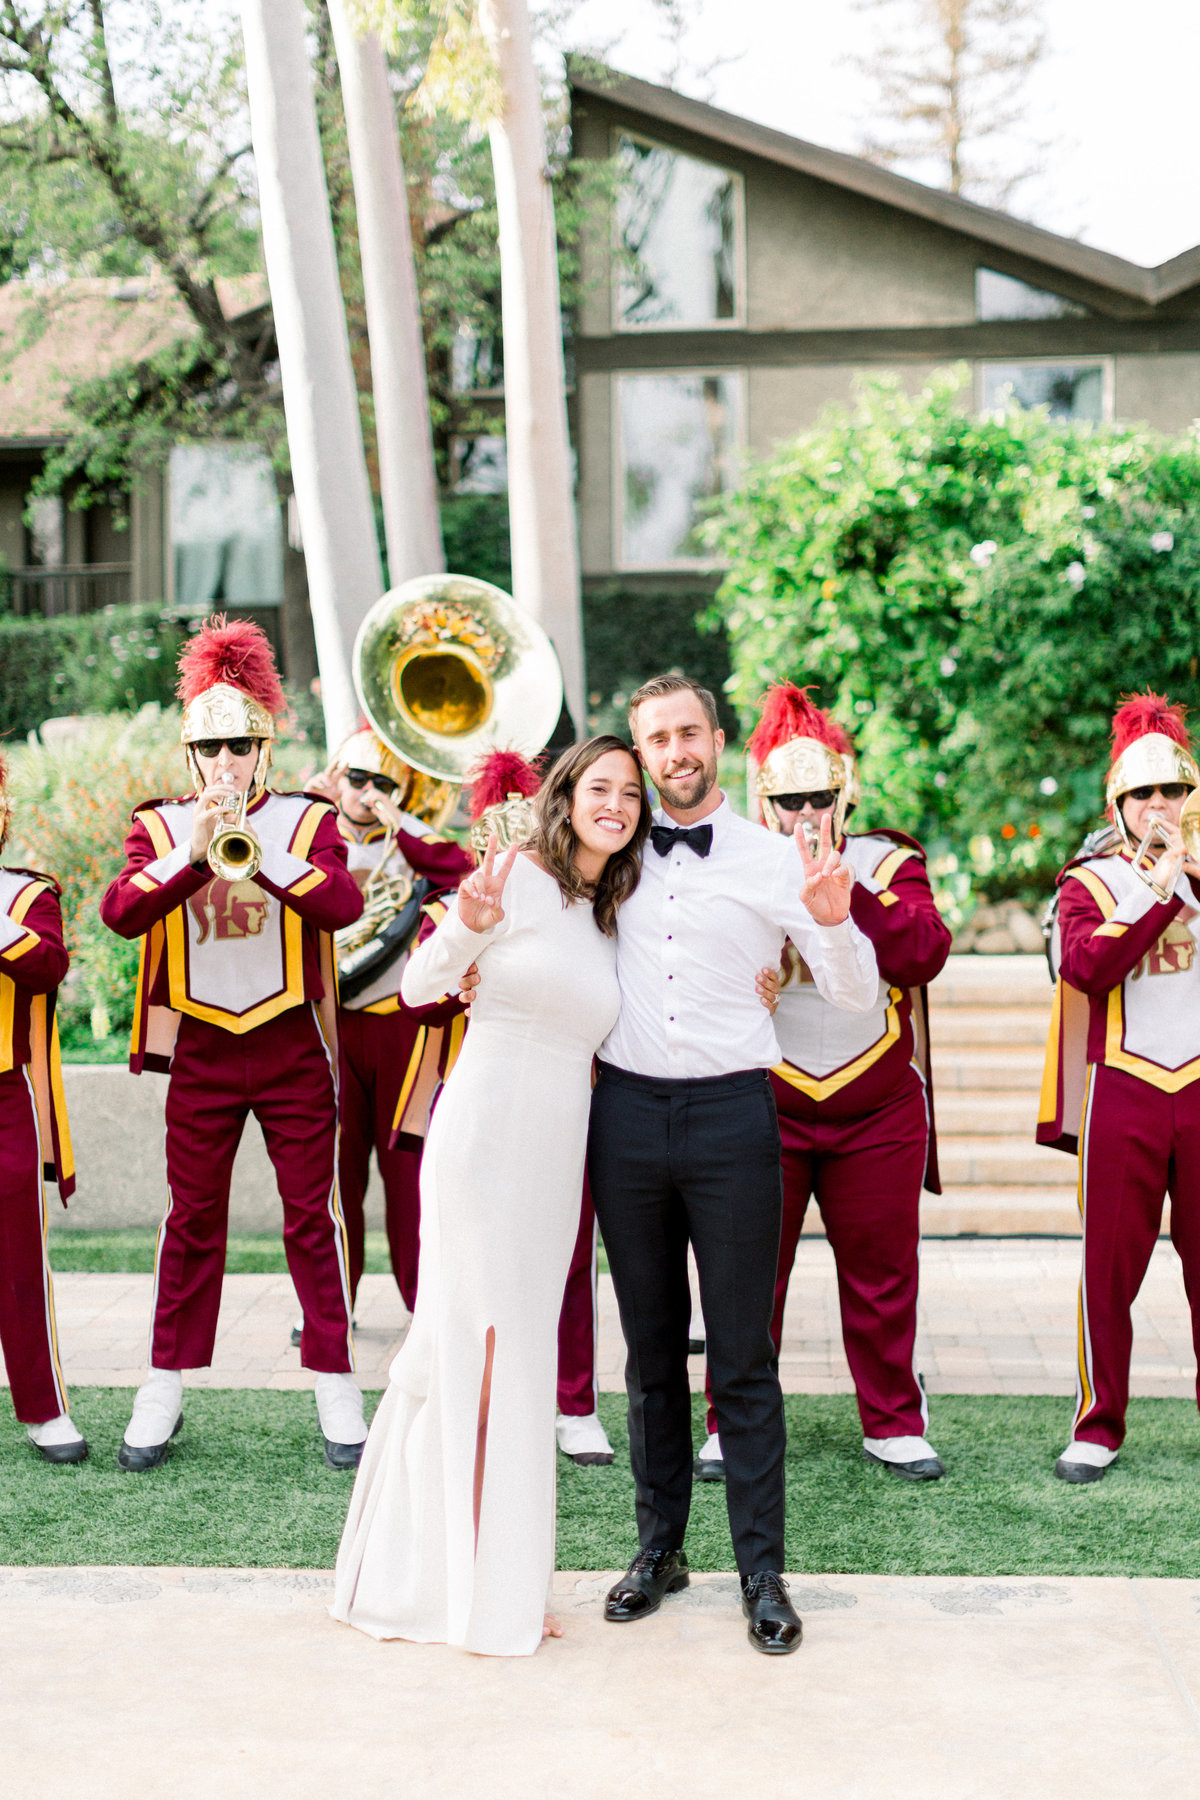 USC Marching band at wedding reception with bride and groom at Maravilla Gardens